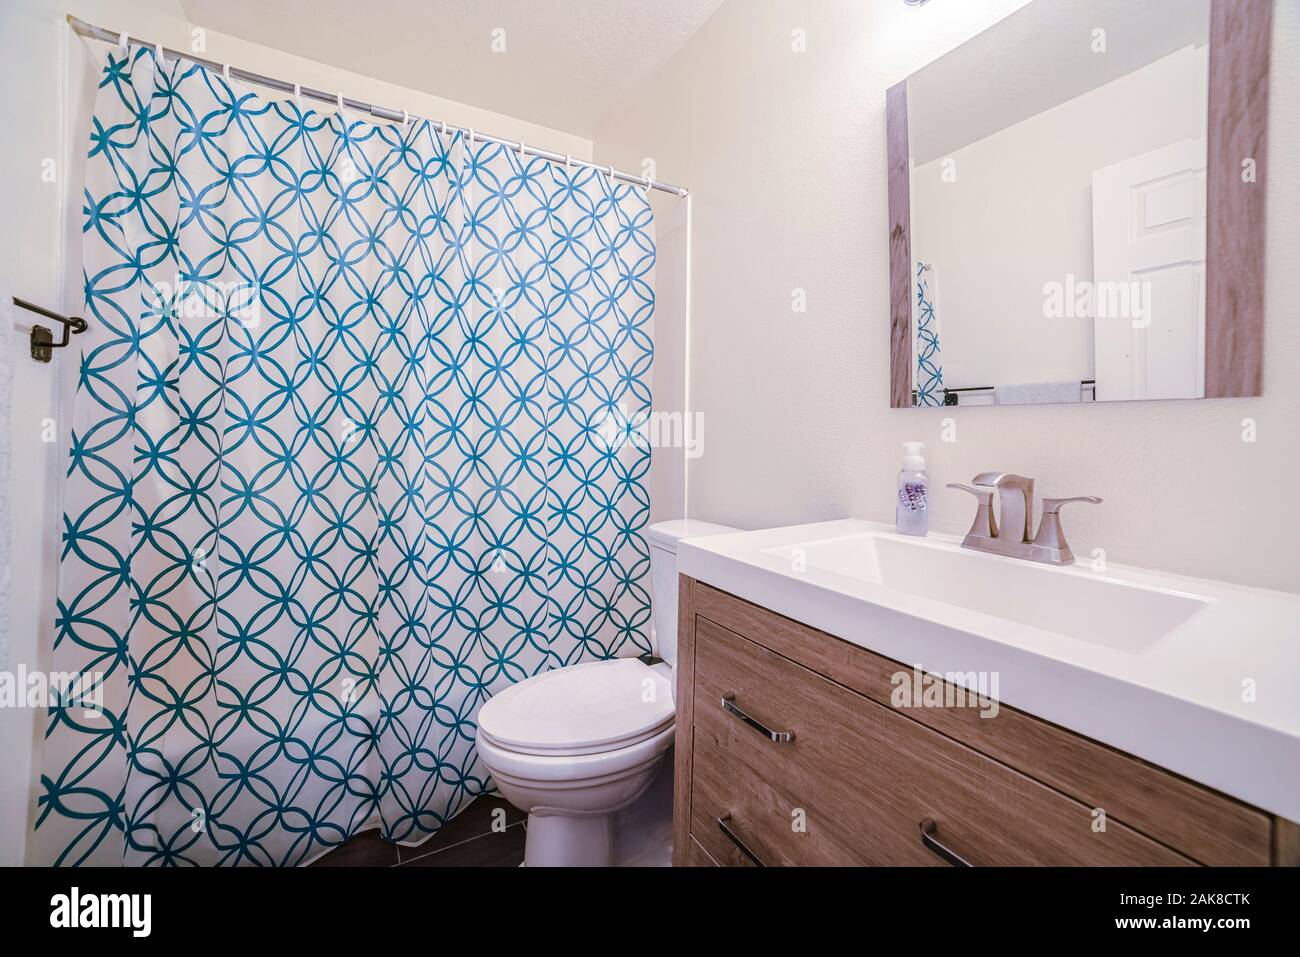 Small Bathroom With Patterned Shower Curtain In House Stock Photo Alamy